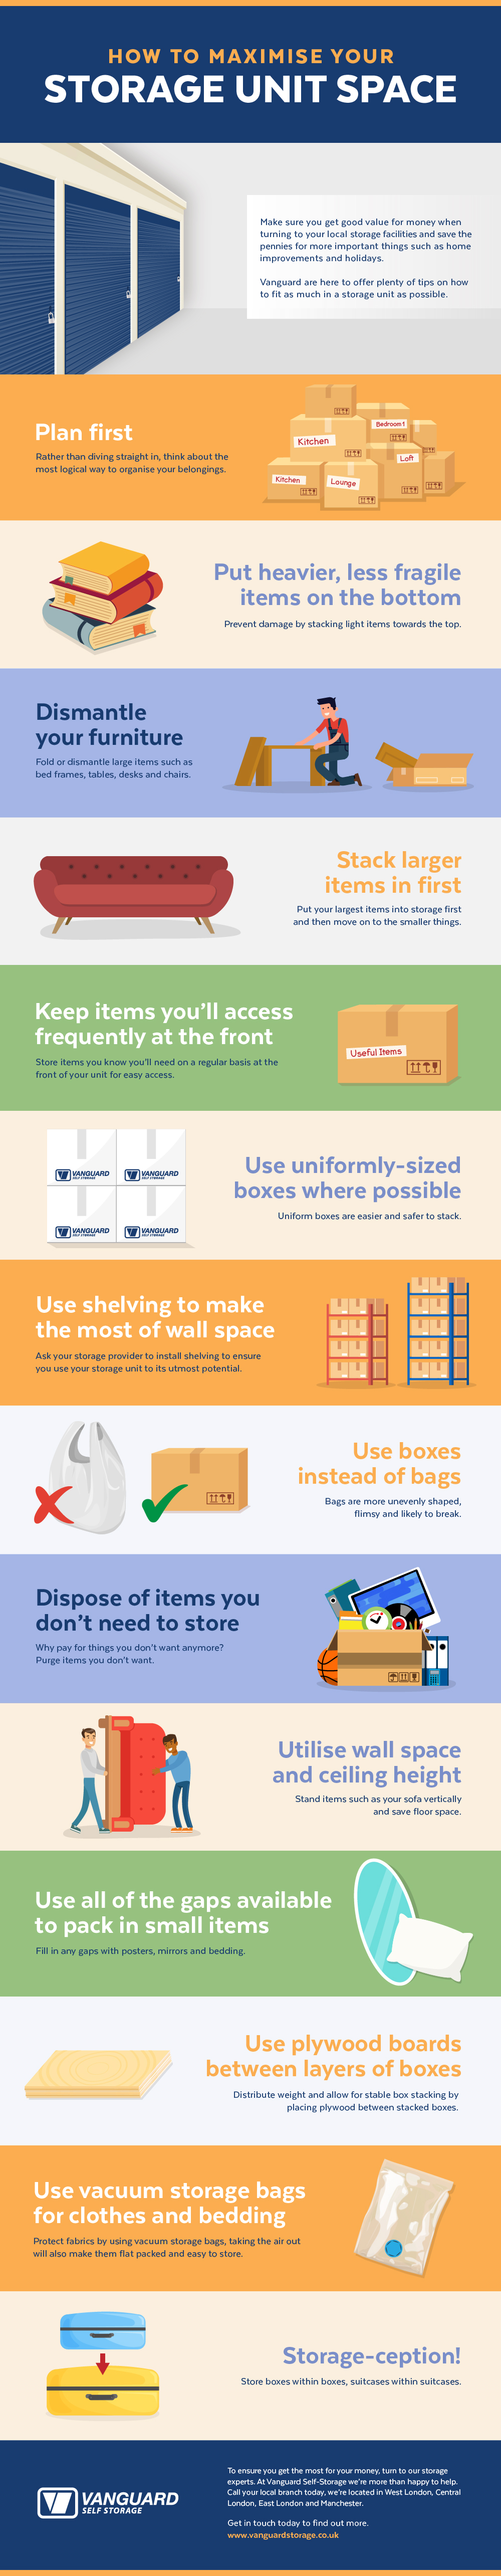 How To Maximise Your Storage Unit Space infographic